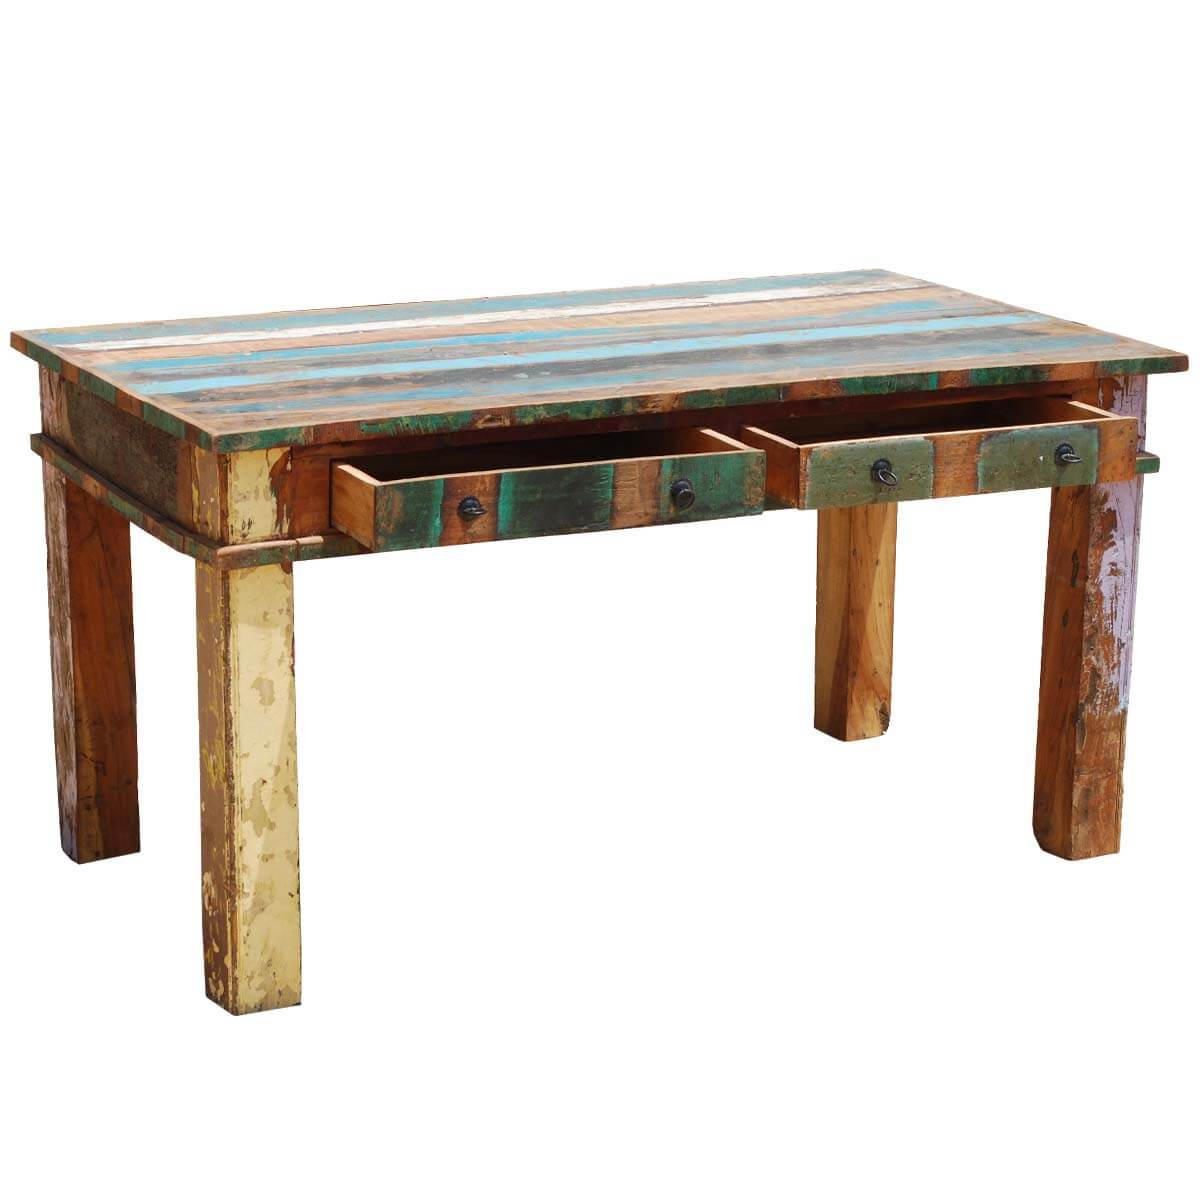 Rustic Wooden Dining Tables ~ Reclaimed wood rustic dining room table furniture